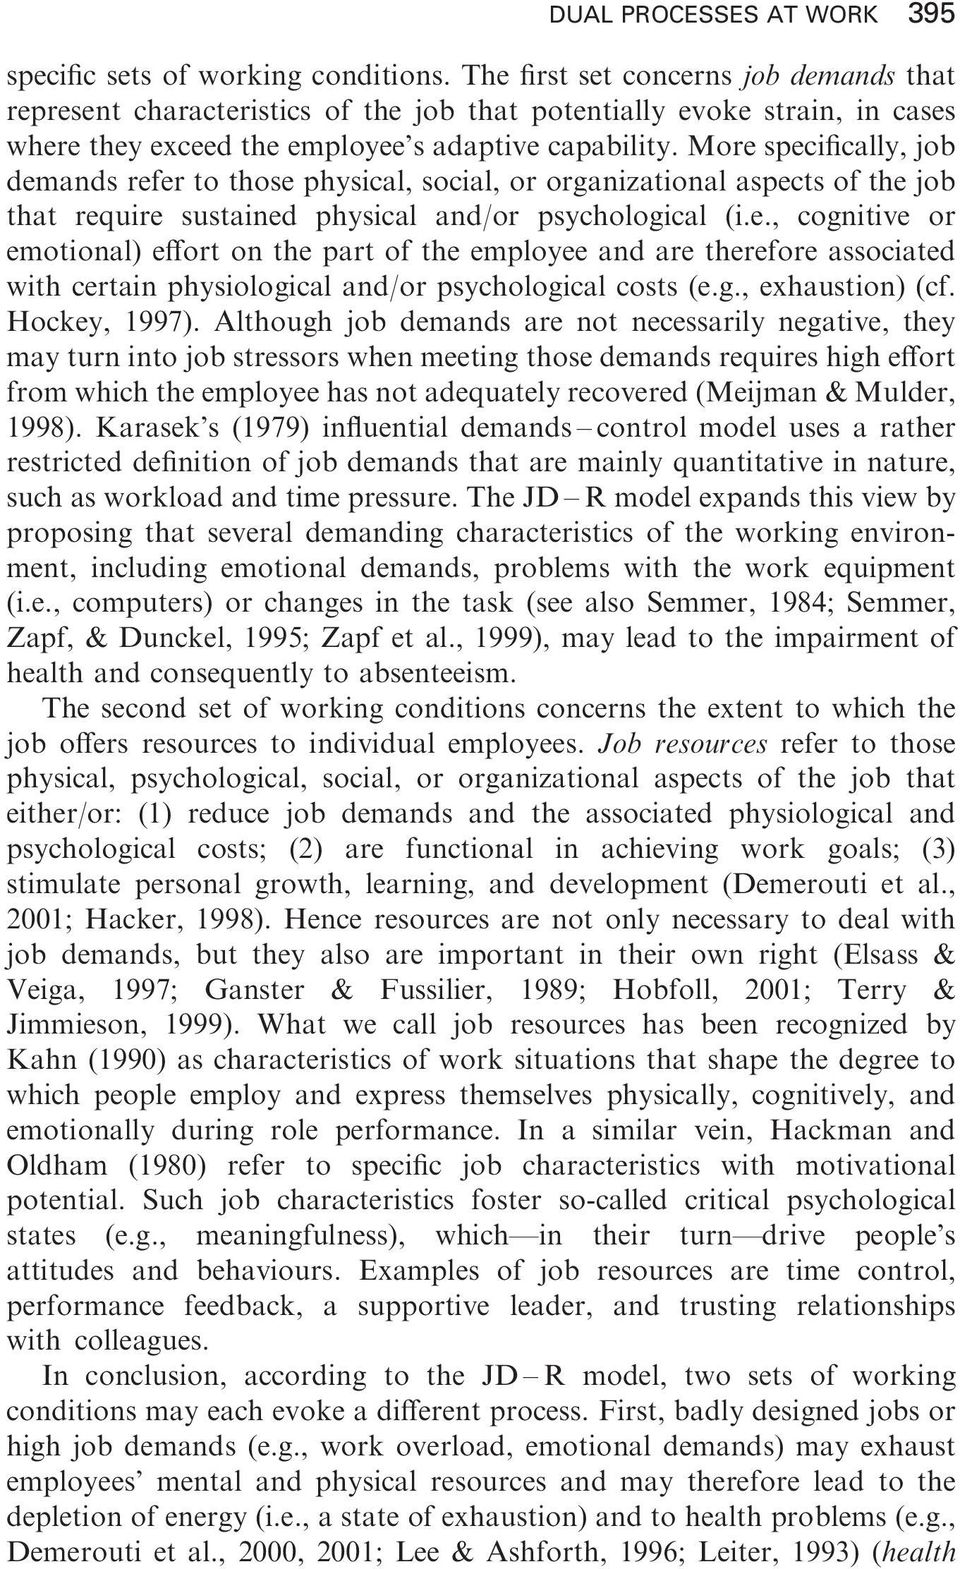 More specifically, job demands refer to those physical, social, or organizational aspects of the job that require sustained physical and/or psychological (i.e., cognitive or emotional) effort on the part of the employee and are therefore associated with certain physiological and/or psychological costs (e.